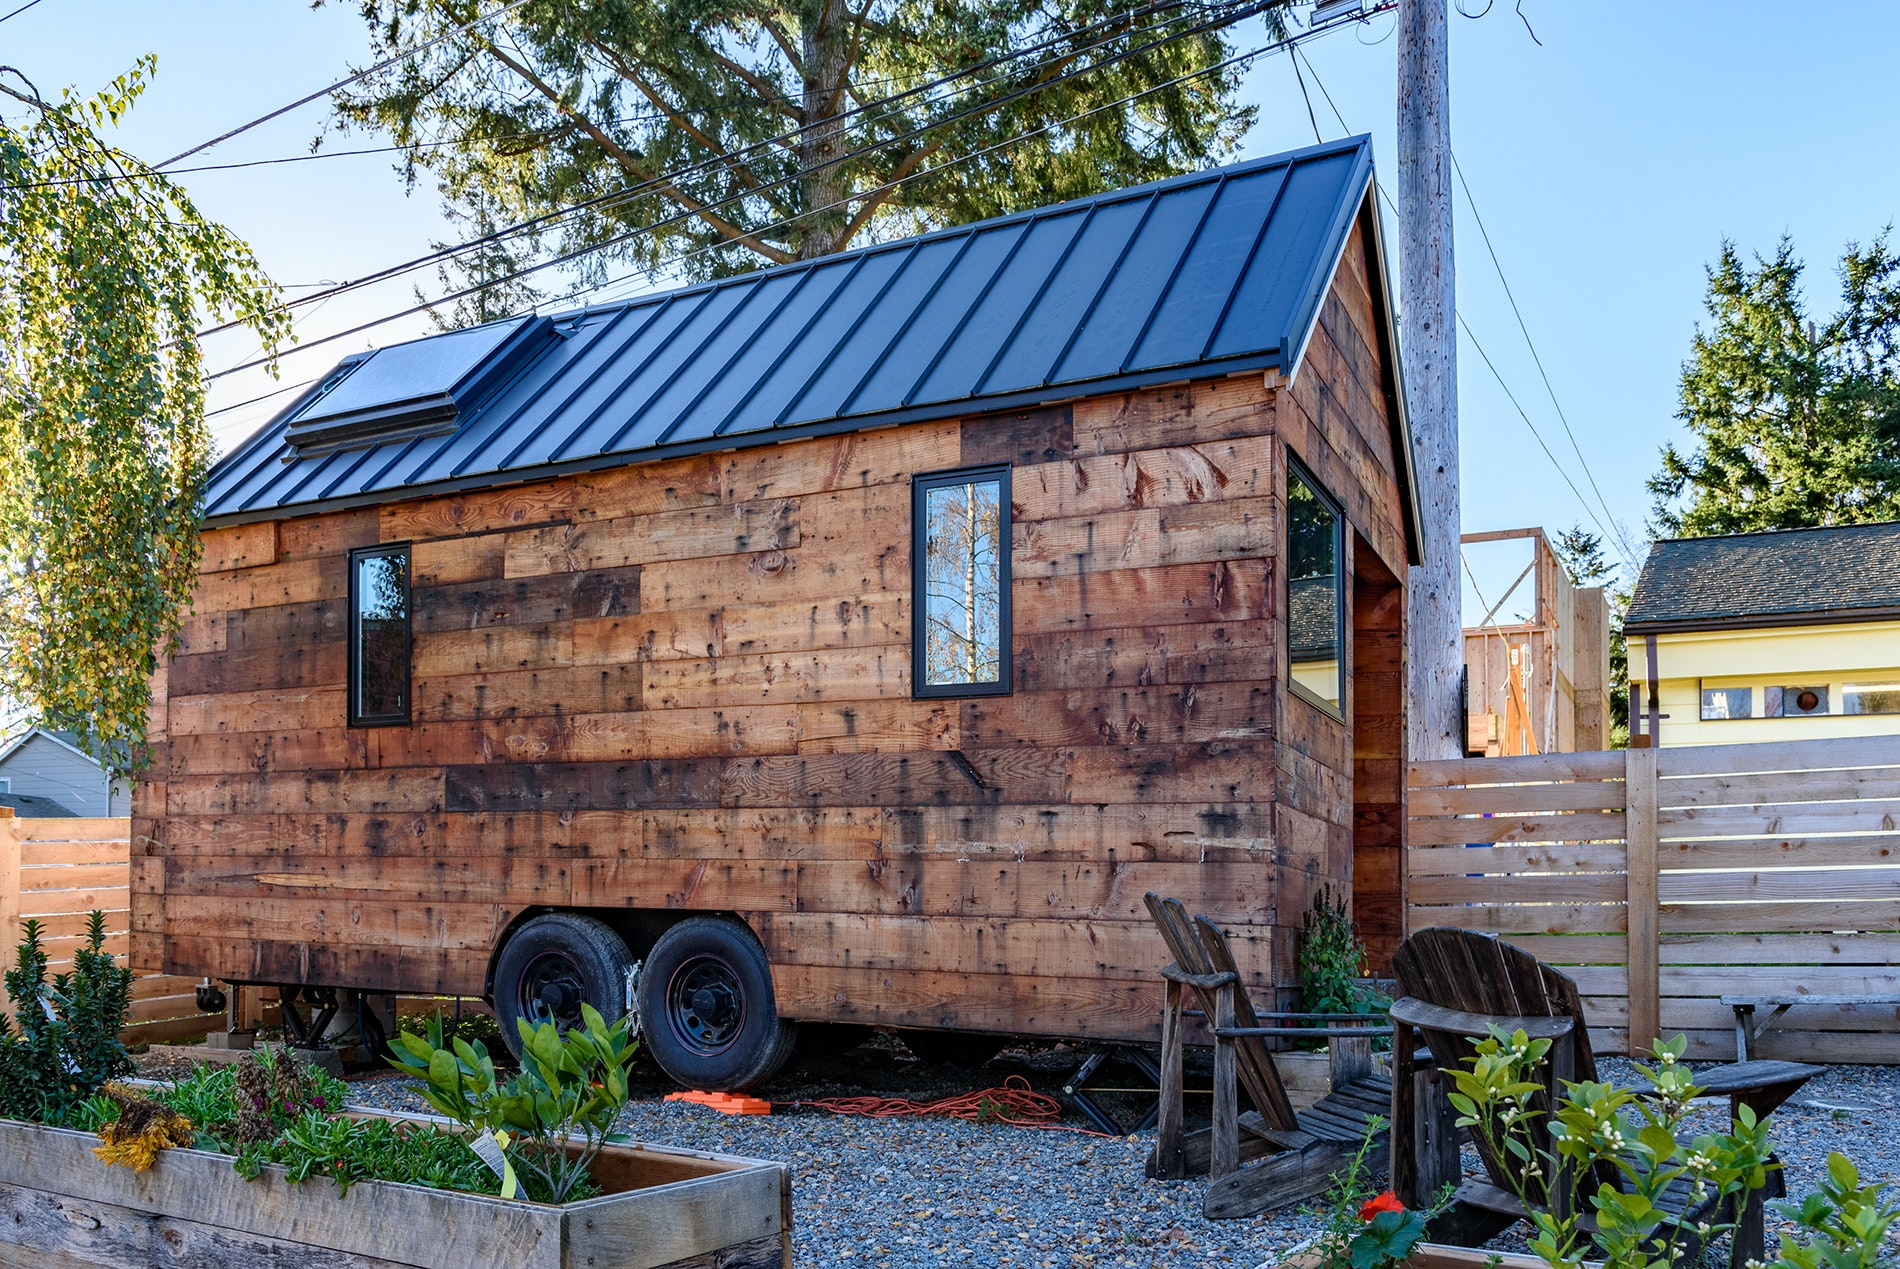 9 Seattle Airbnbs Where You Can Stay Like a Local